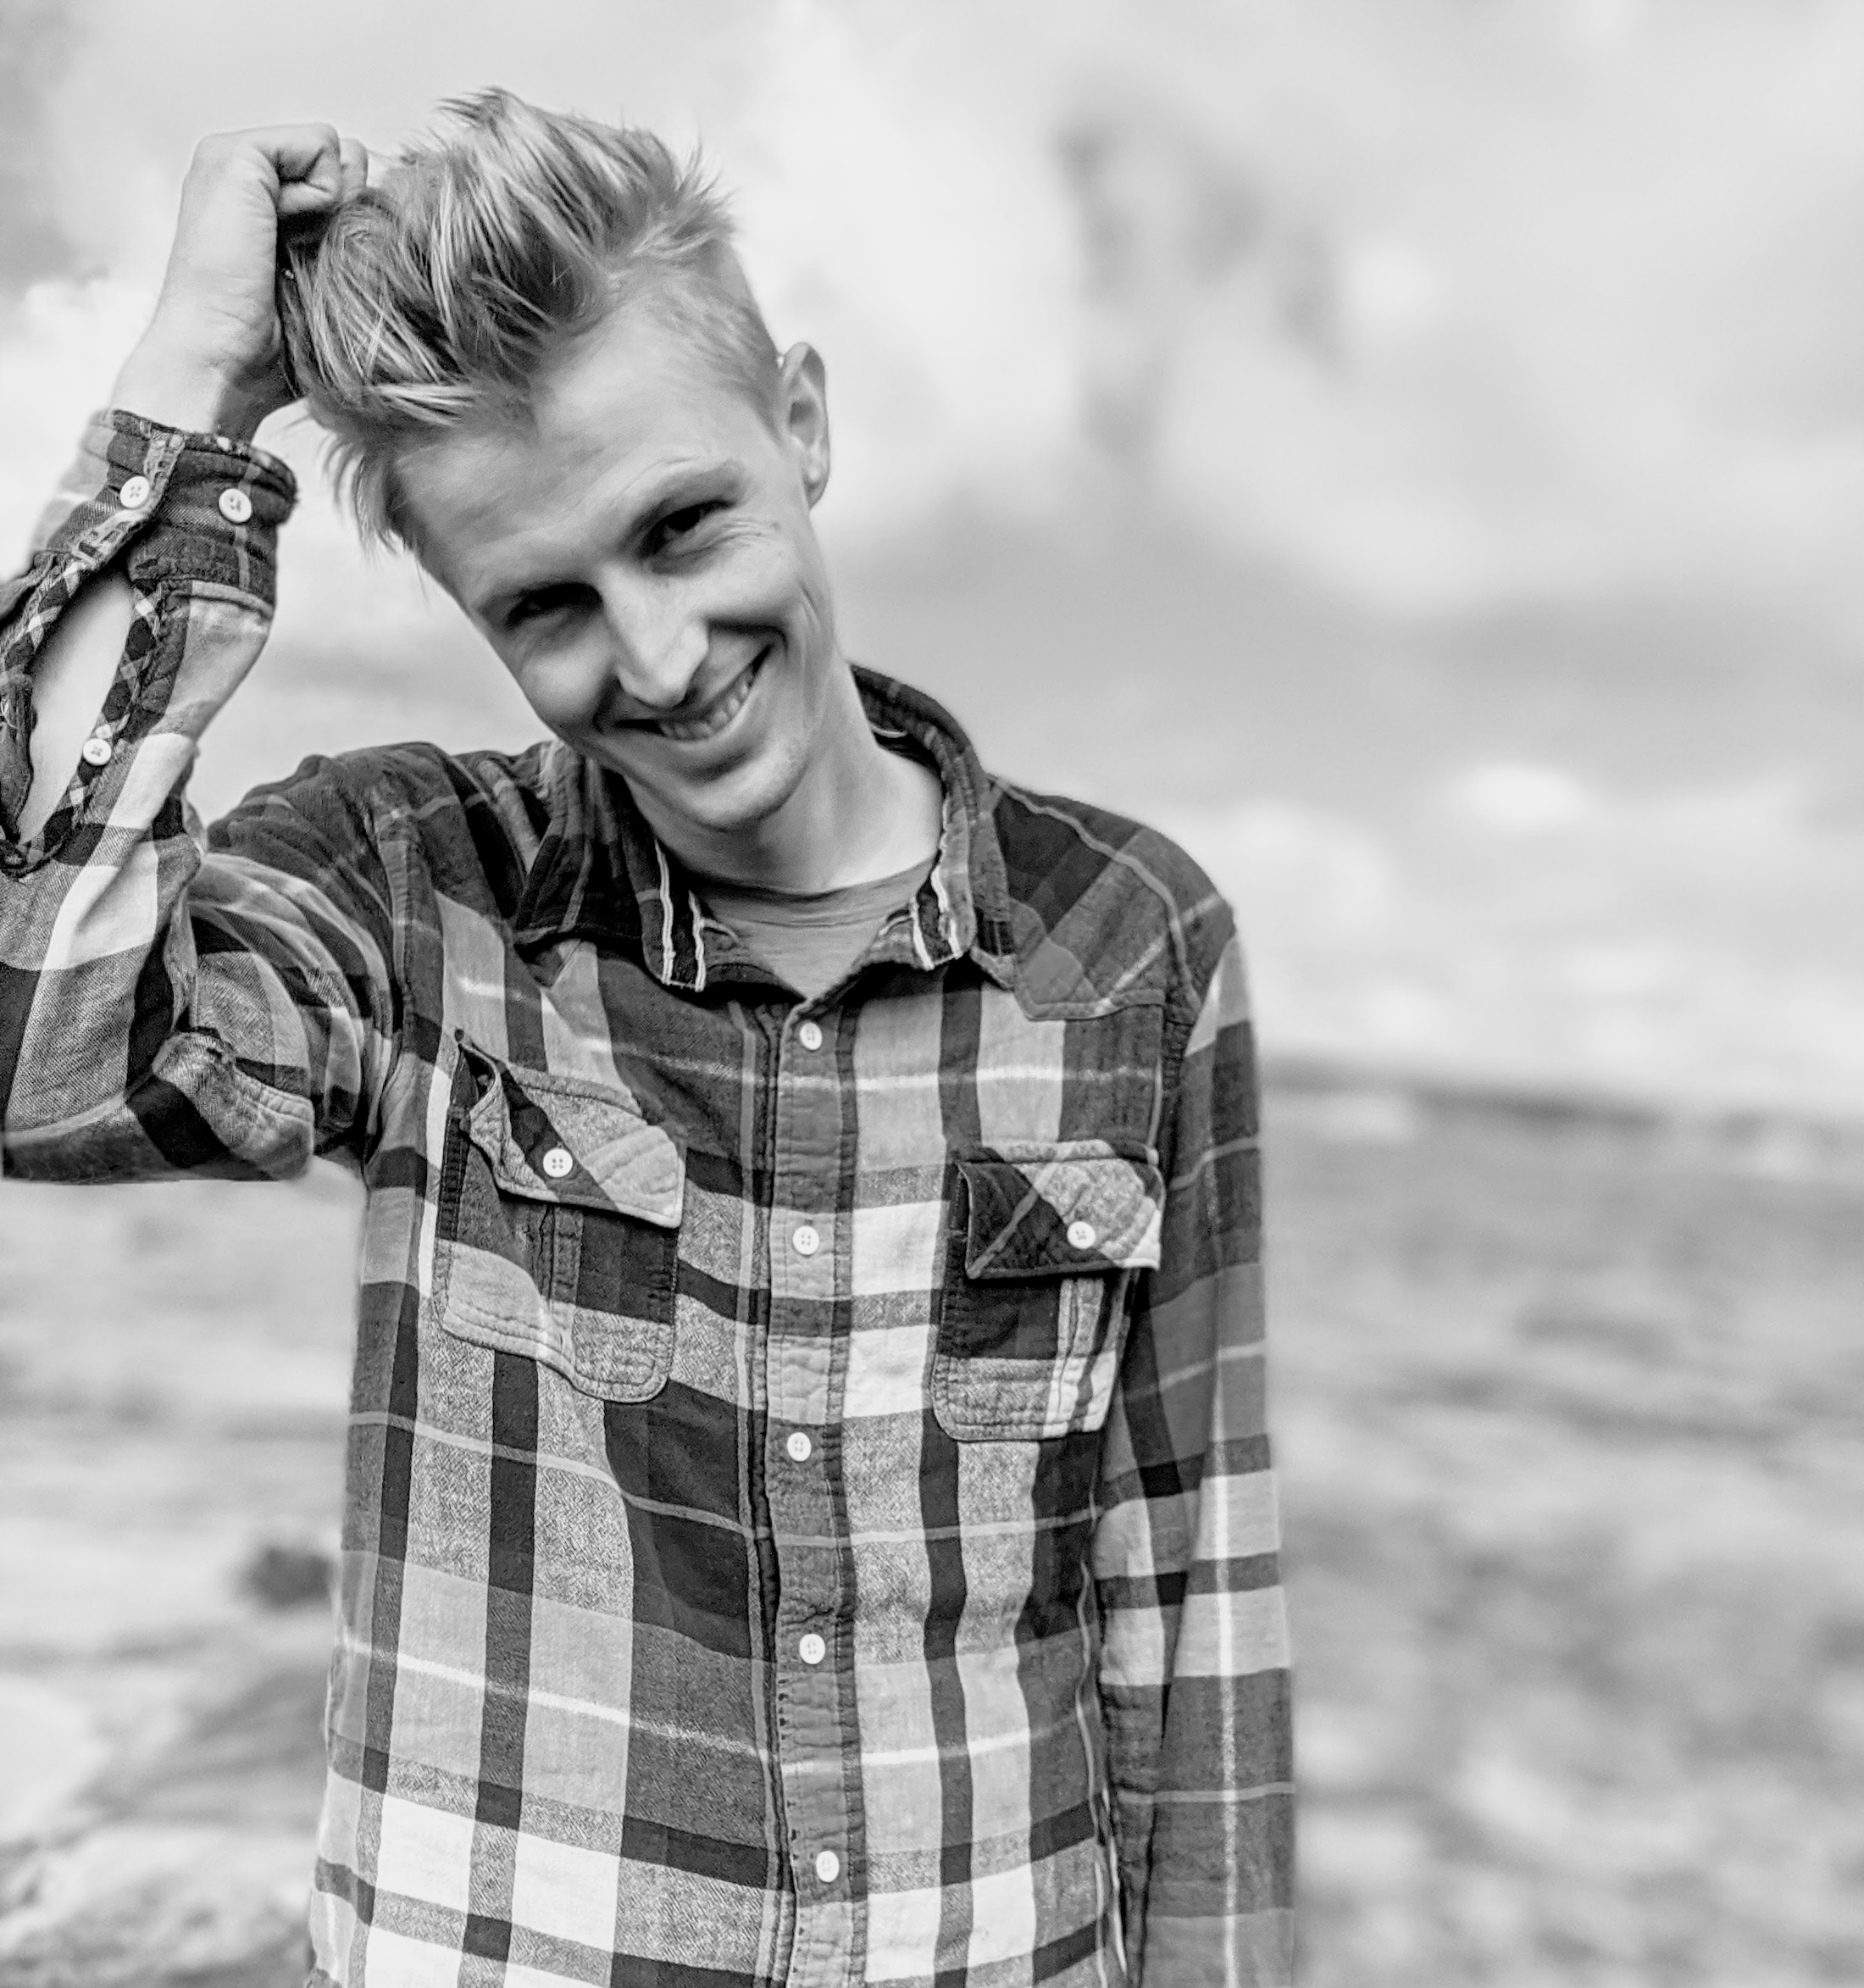 A man with medium blonde hair stands in front of Lake Superior. The image is black and white and he is holding his hair on top of his head with his right hand. He's wearing a buttoned up plaid shirt.